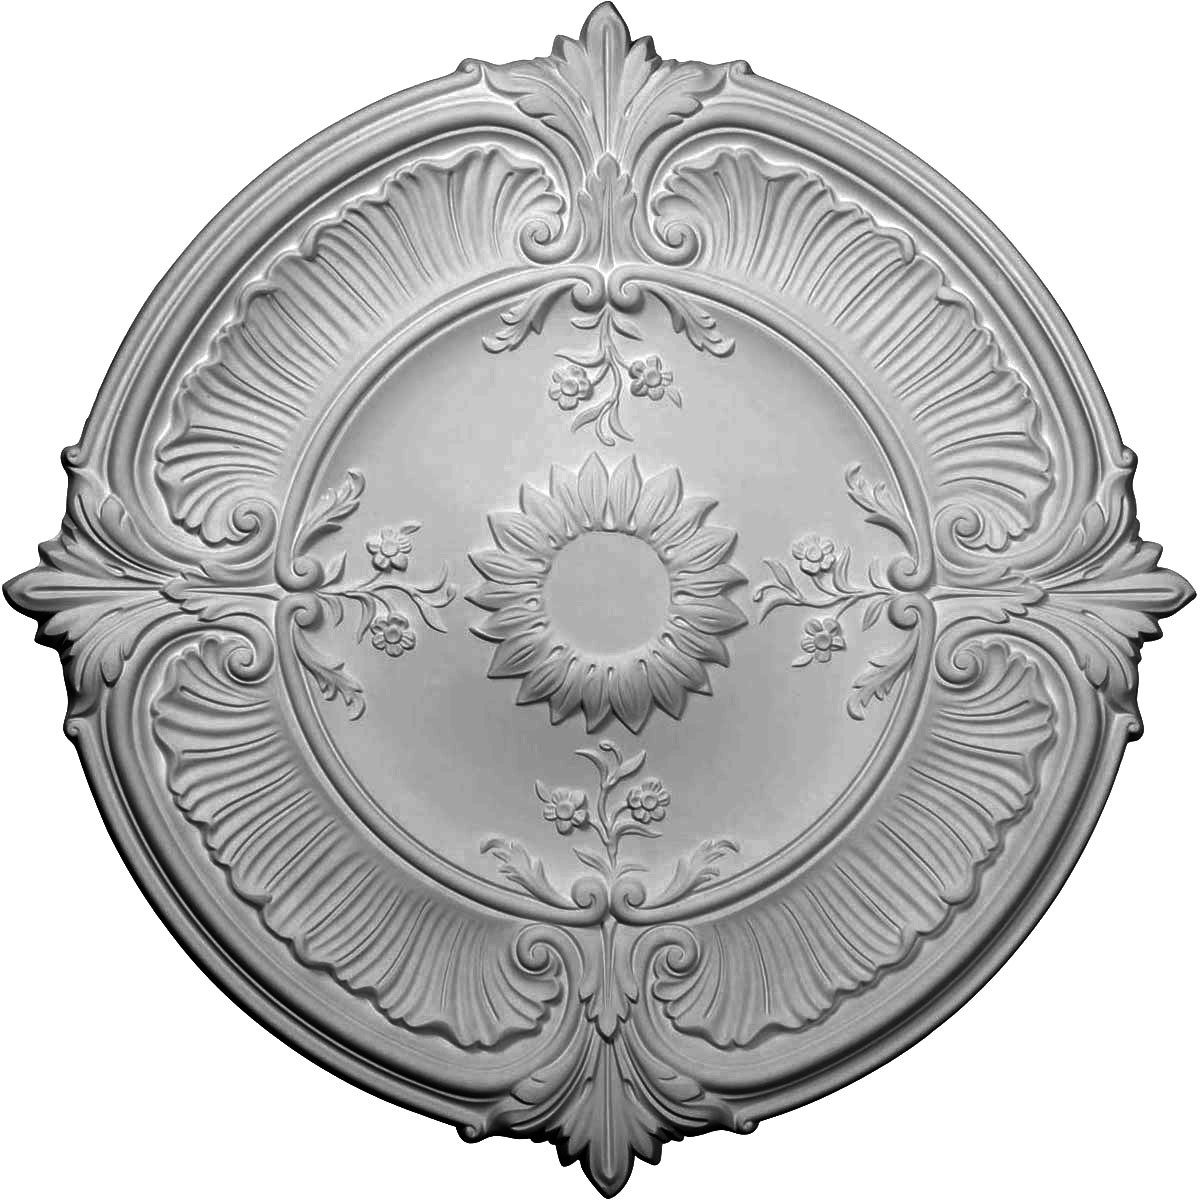 """EM-CM30AT - 30 1/8""""OD x 1 1/2""""P Attica Acanthus Leaf Ceiling Medallion (Fits Canopies up to 3 1/4"""")"""